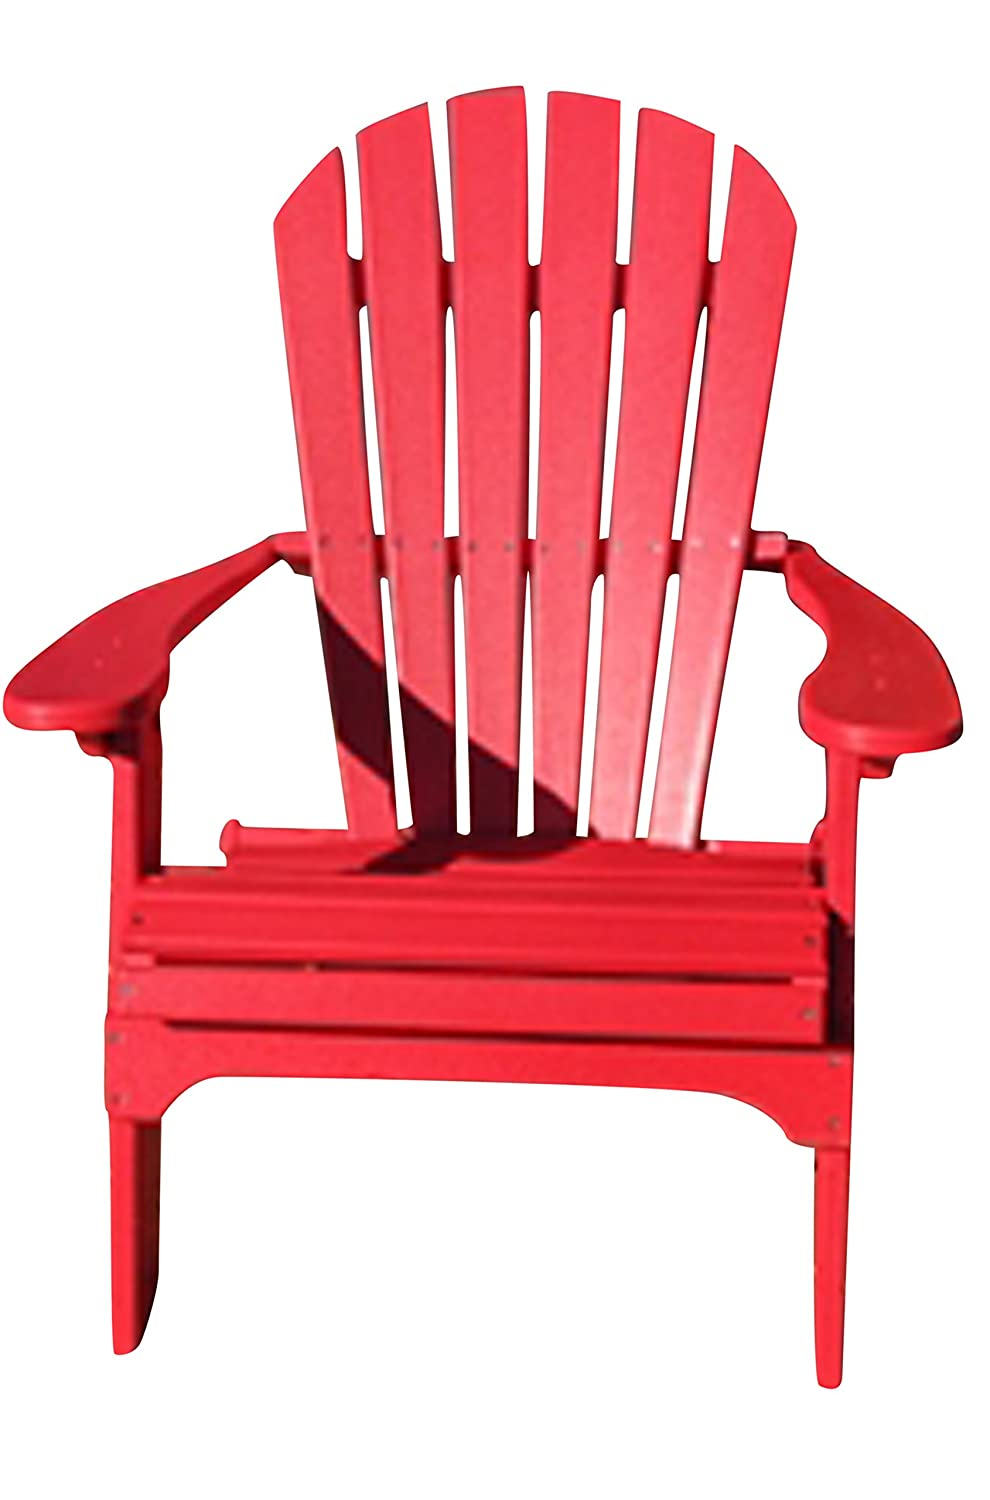 Red Plastic Adirondack Chairs Home Design Ideas